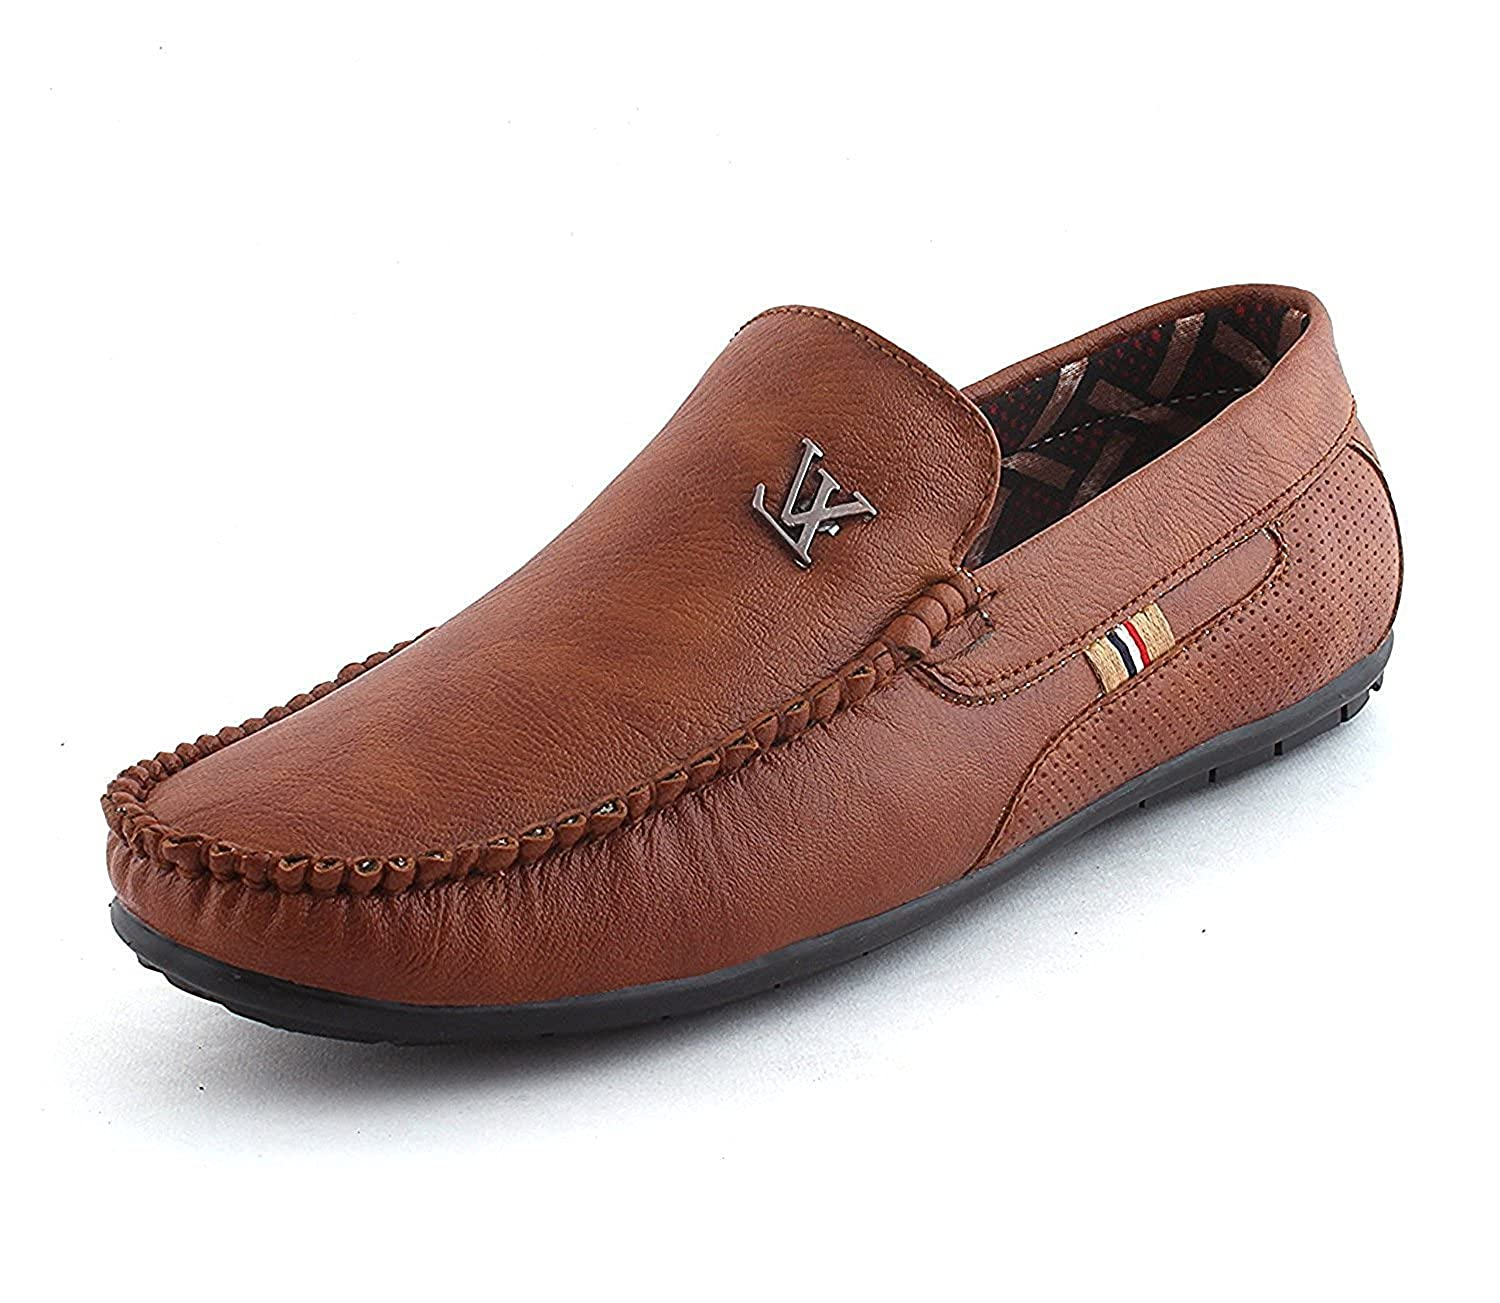 f1172732982 Ethics Perfect Brown Loafer Shoes for Men  Buy Online at Low Prices in  India - Amazon.in